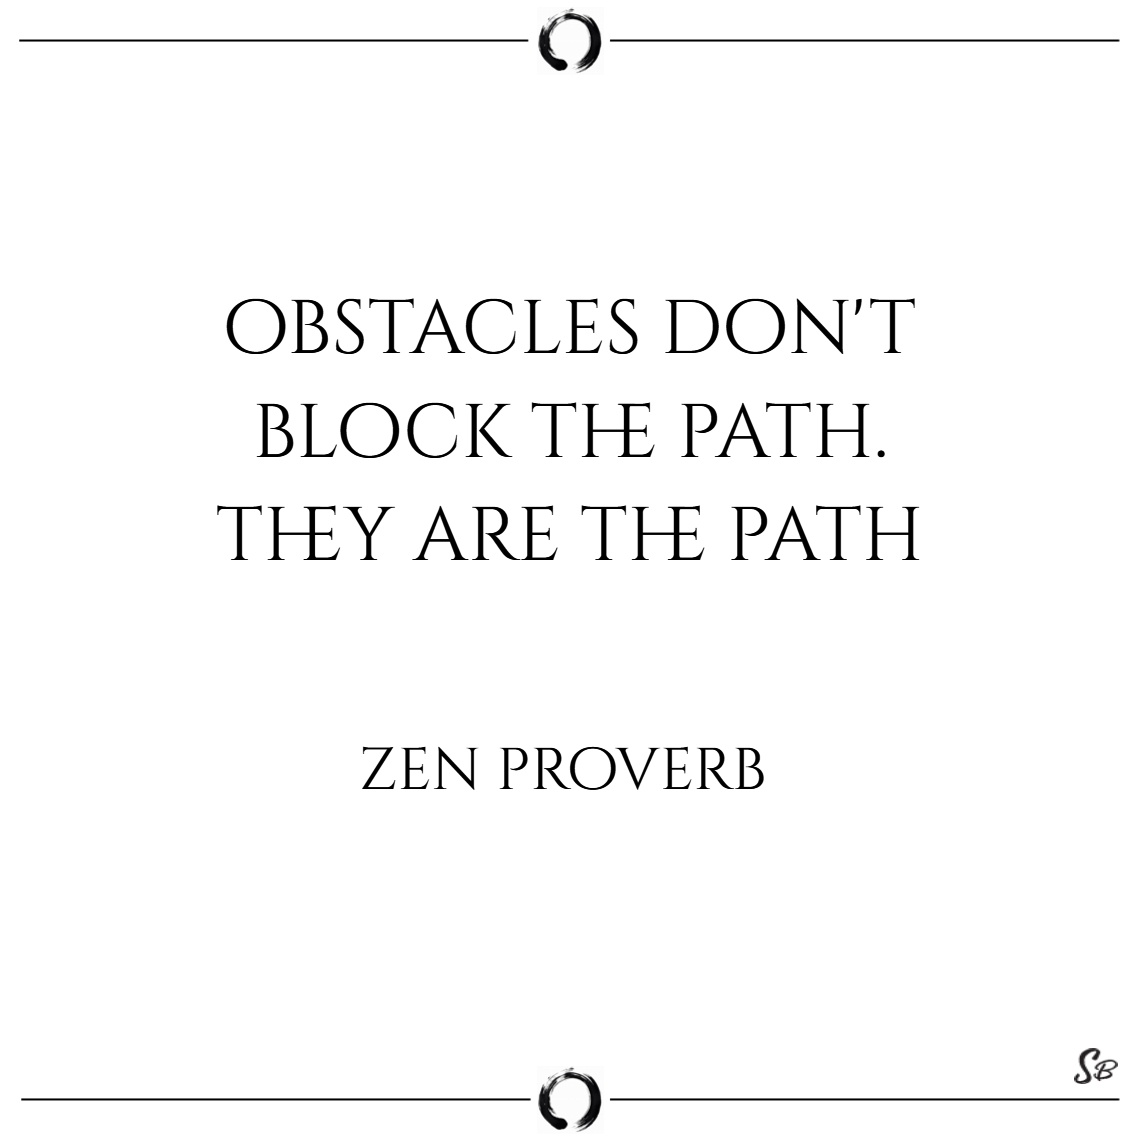 Obstacles don't block the path. they are the path.